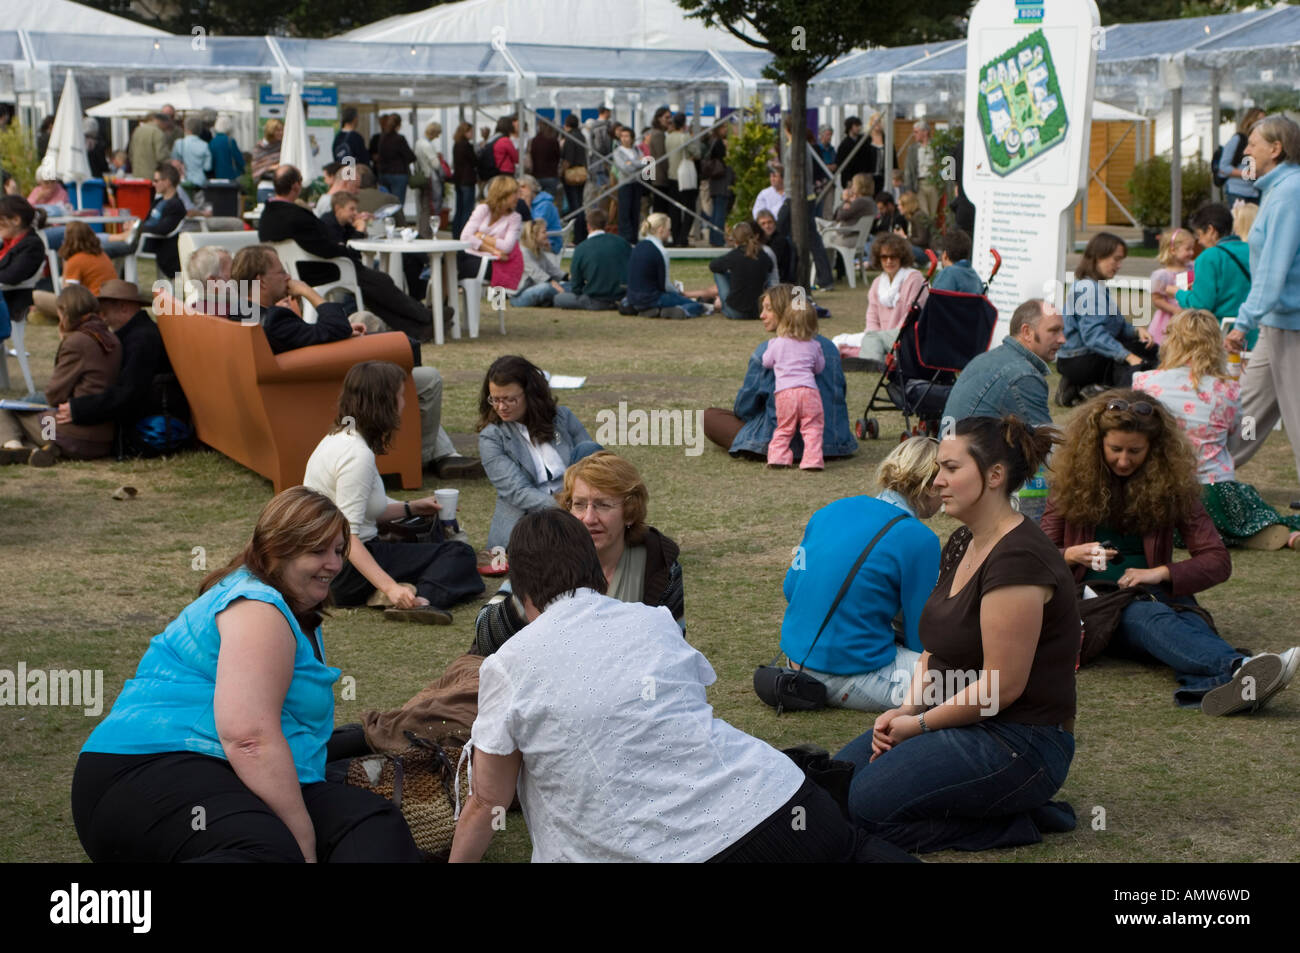 People sitting on the grass or on sofa at Edinburgh Book Festival 2006 - Stock Image